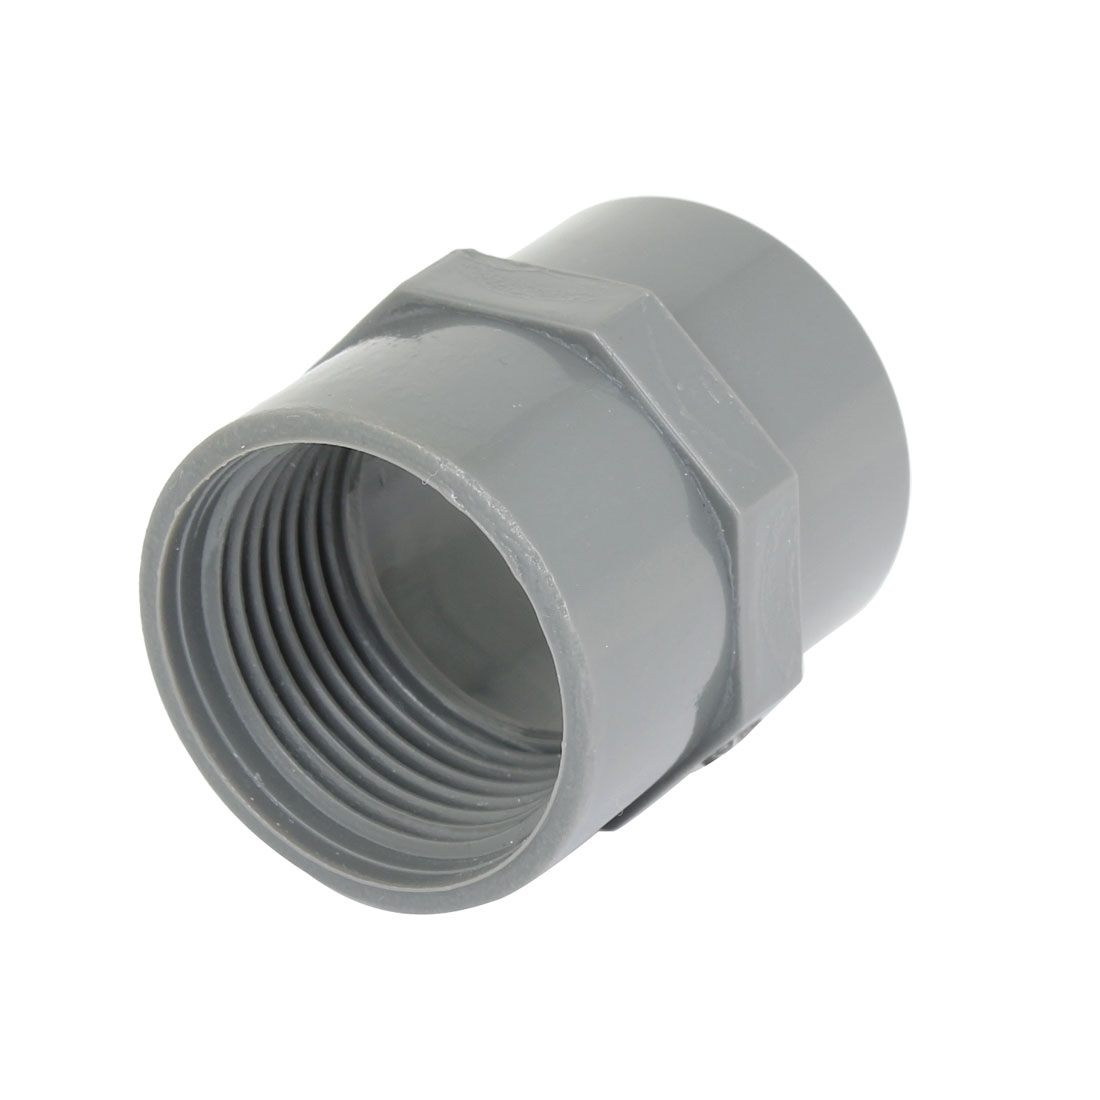 32mm Female Thread Gray Straight Water Hose Pipe Fitting Connector